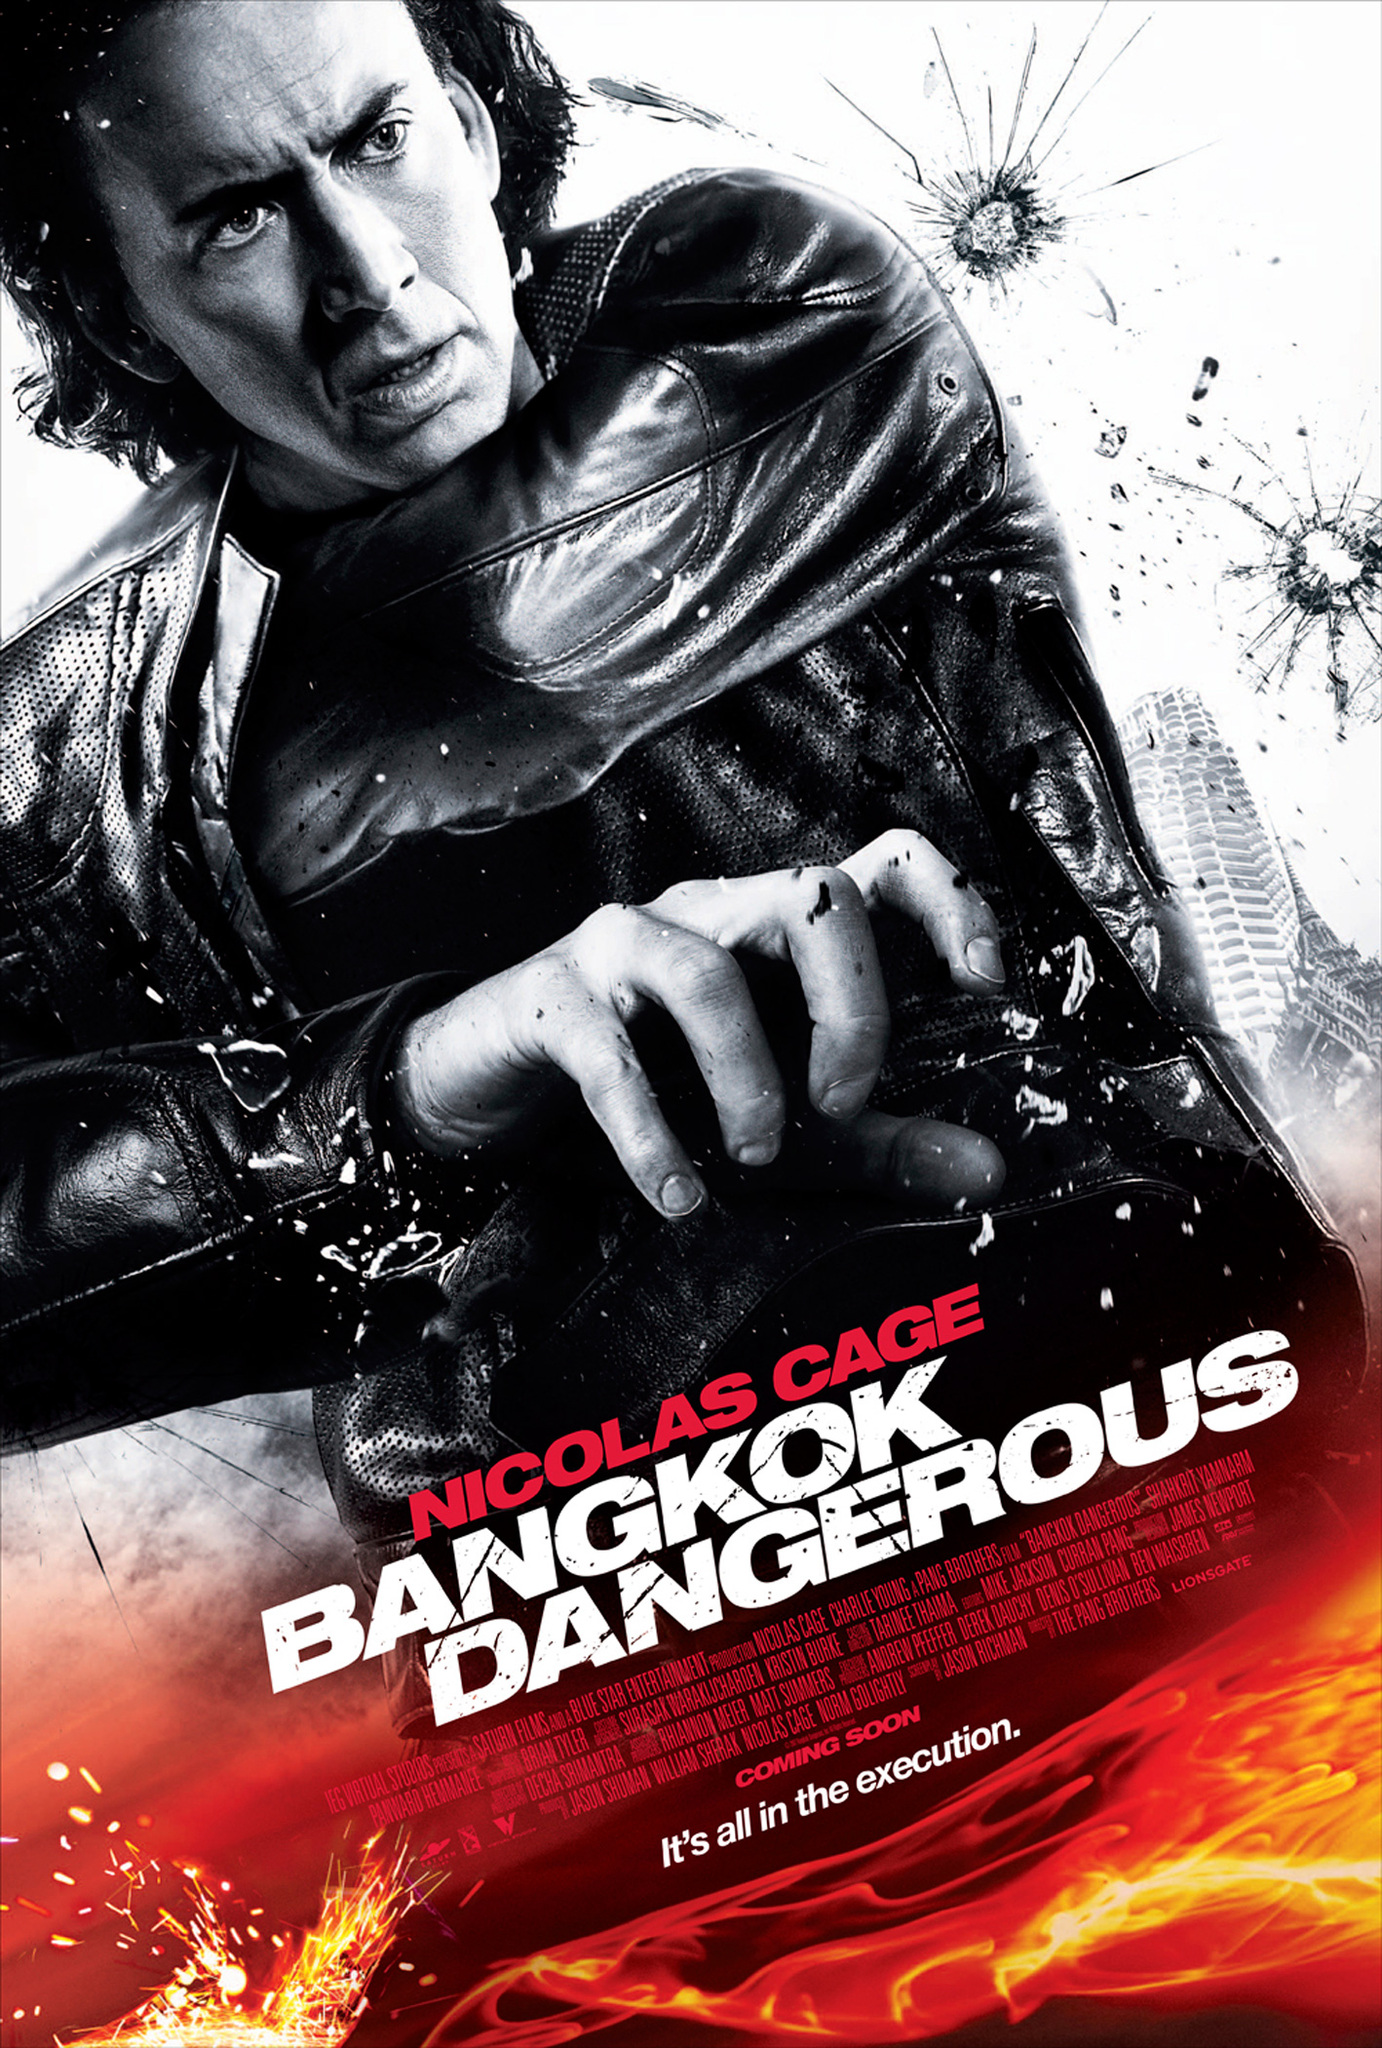 Bangkok Dangerous (2008) - Directed by: The Pang BrothersStarring: Nicolas Cage, Chakrit Yamnam, Charlie YeungRated: R for Violence, Language, Some SexualityRunning Time: 1h 35mTMM Score: 1.5 StarsSTRENGTHS: Almost So Bad It's Good, Unintentionally HilariousWEAKNESSES: Cinematography, Direction, Action, Performances